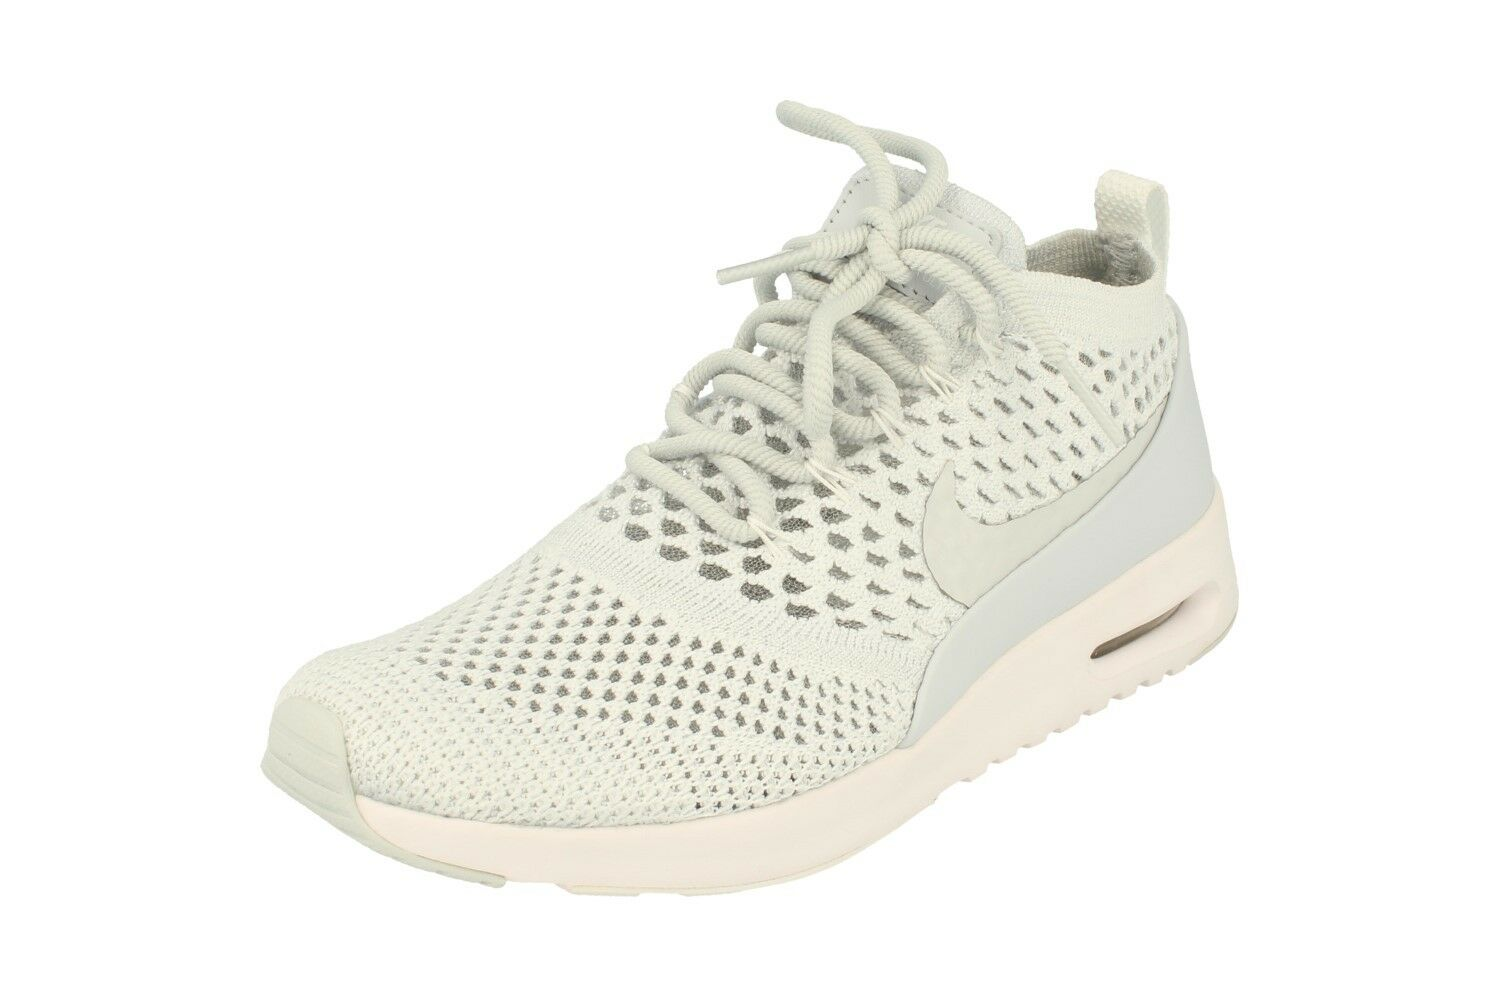 Brand discount Nike Air Max Thea Ultra Fk Womens Running Trainers 881175 Sneaker Shoe 002